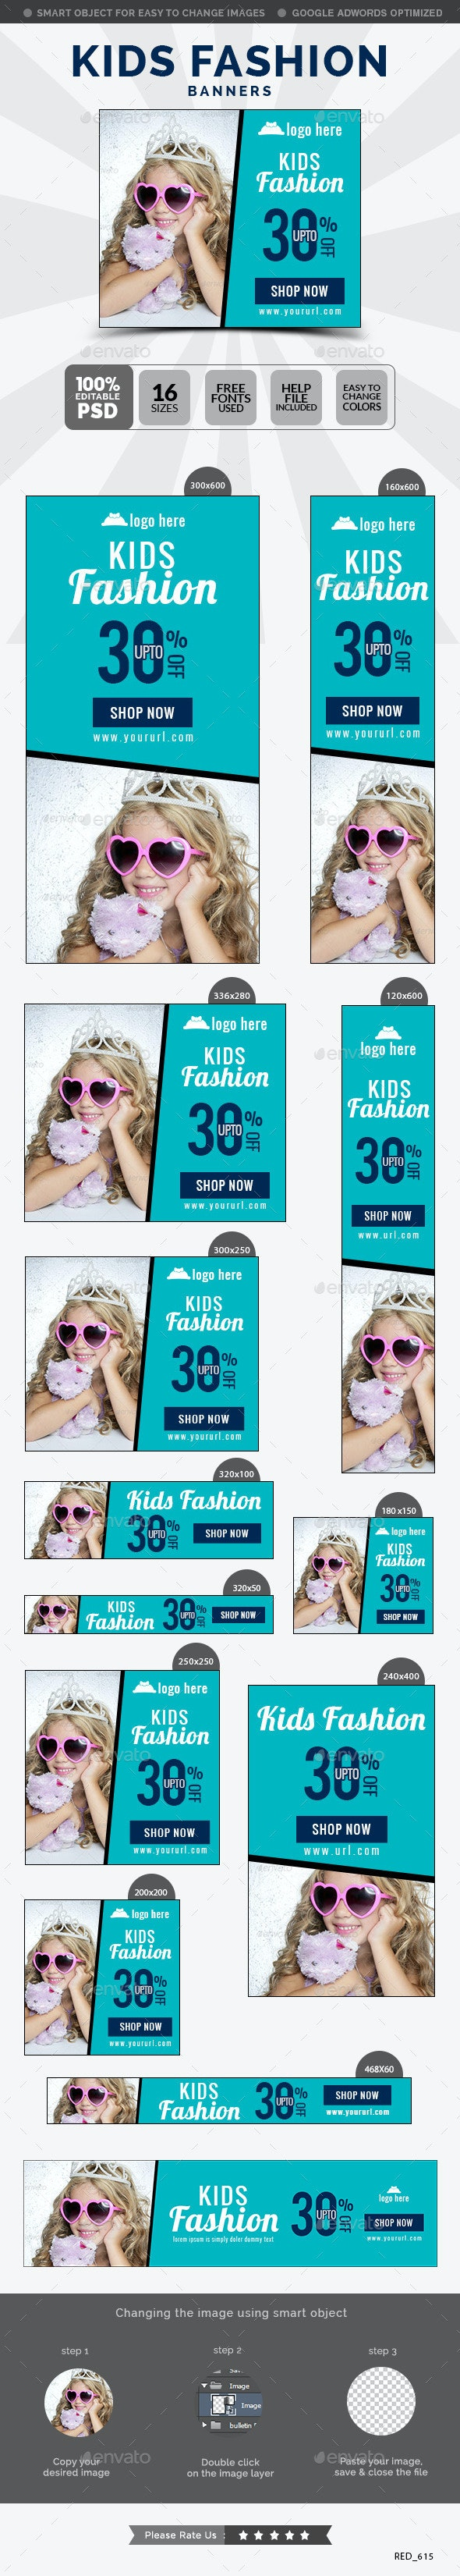 Kids Fashion Banners - Banners & Ads Web Elements